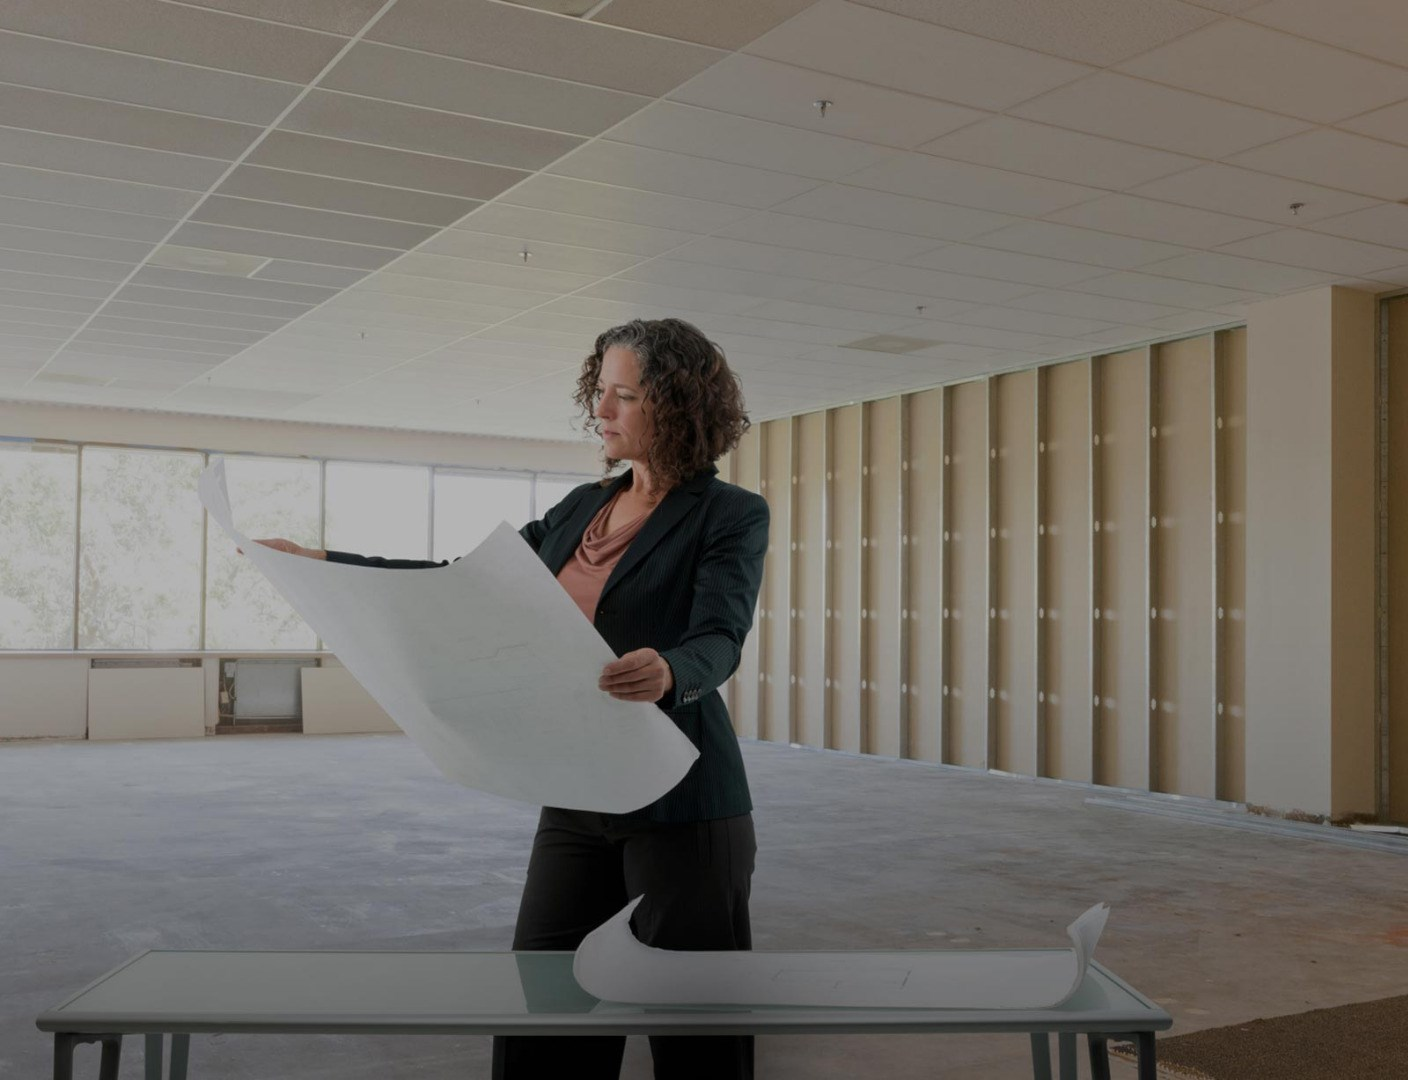 Page background image - Woman in empty office looking at office blueprints